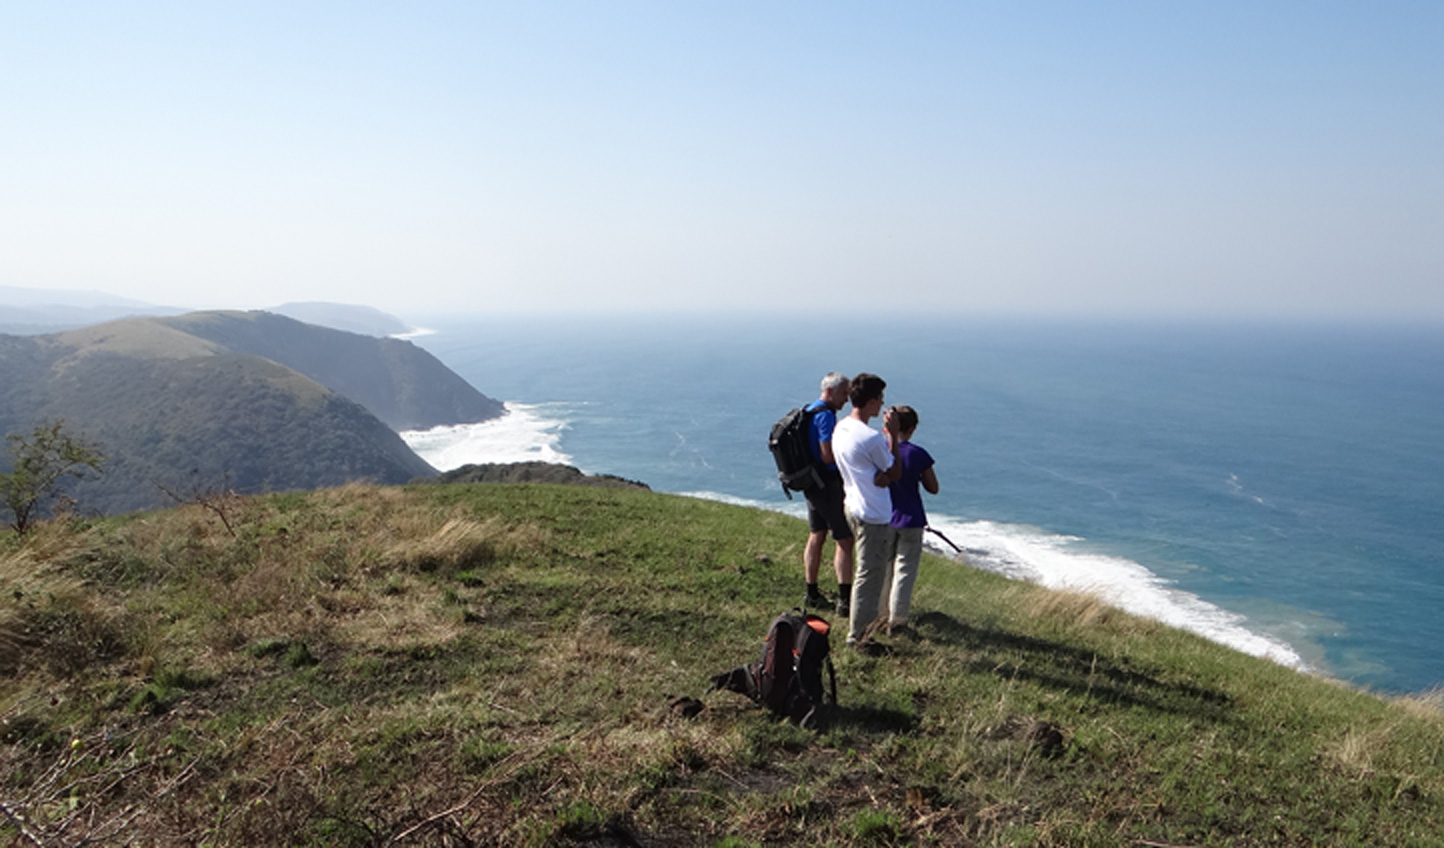 The most spectacular coastal scenery in northern Pondoland